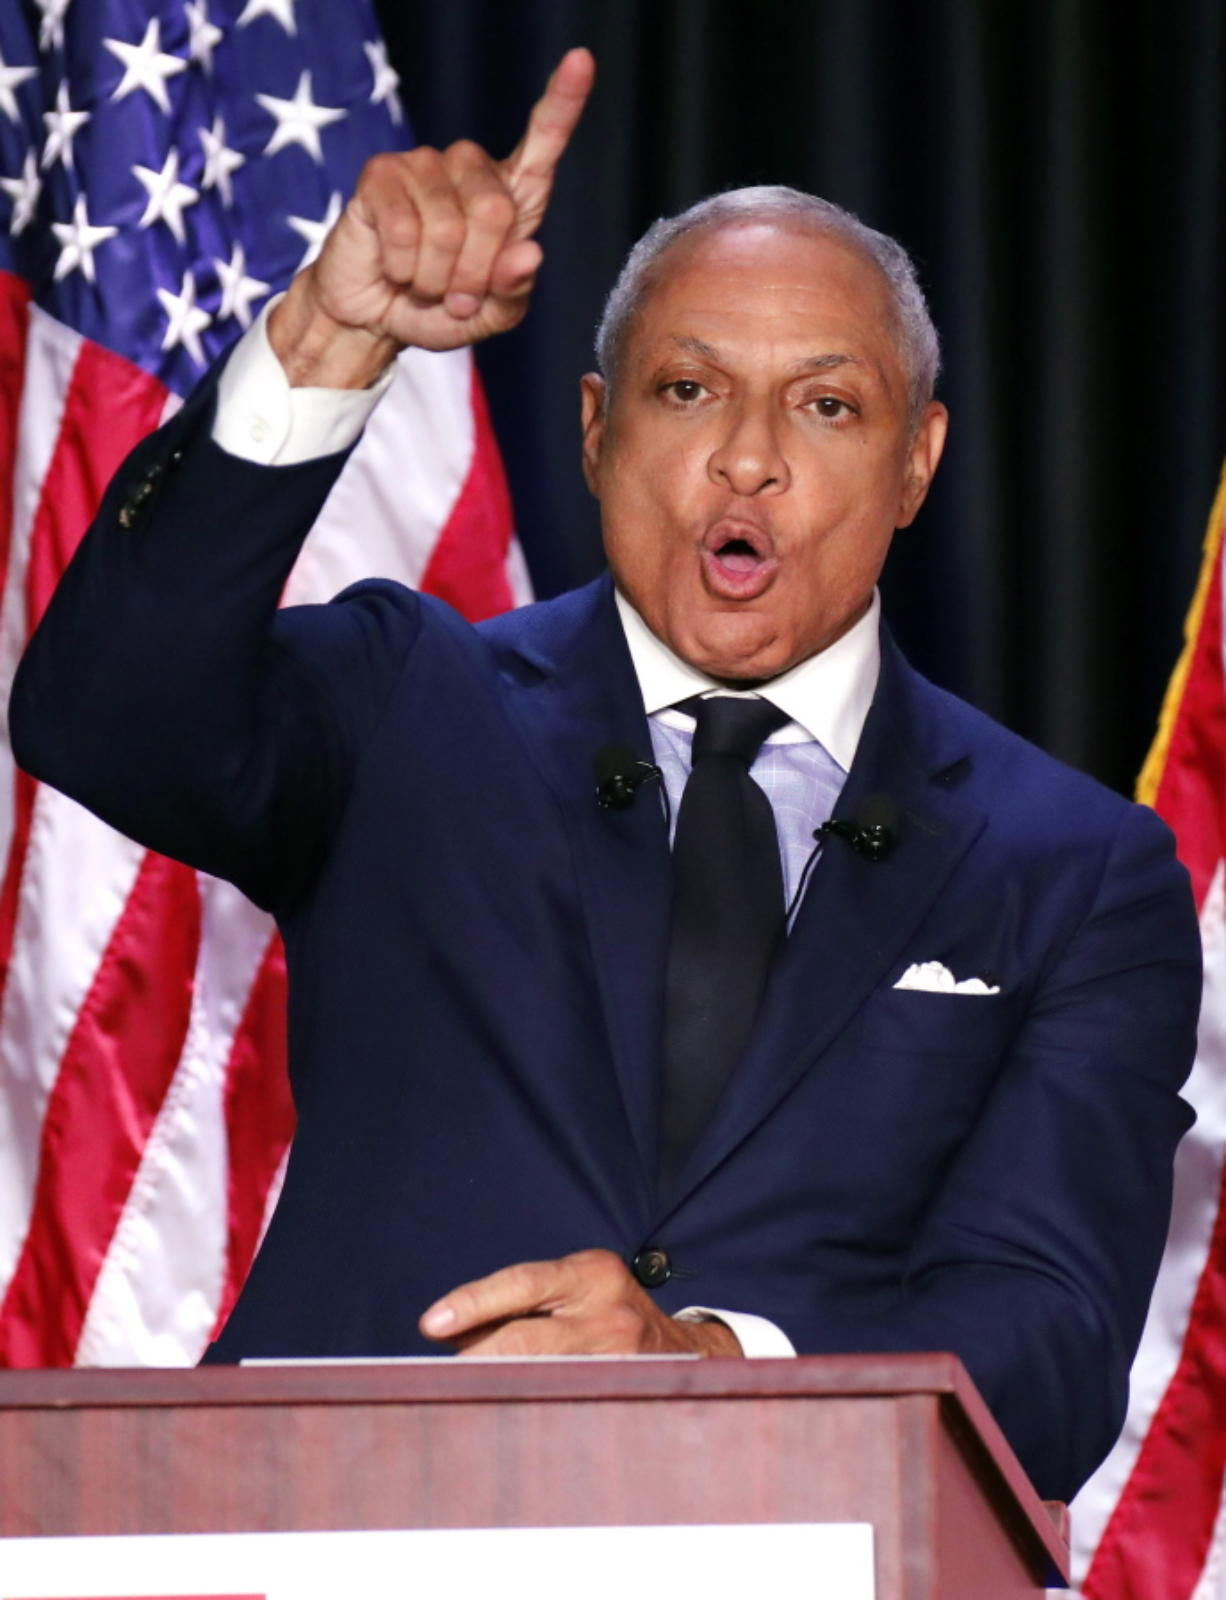 Democrat Mike Espy responds to a statement from his opponent, appointed U.S. Sen. Cindy Hyde-Smith, R-Miss., during a televised Mississippi U.S. Senate debate in Jackson, Miss., on Tuesday. (AP Photo/Rogelio V.